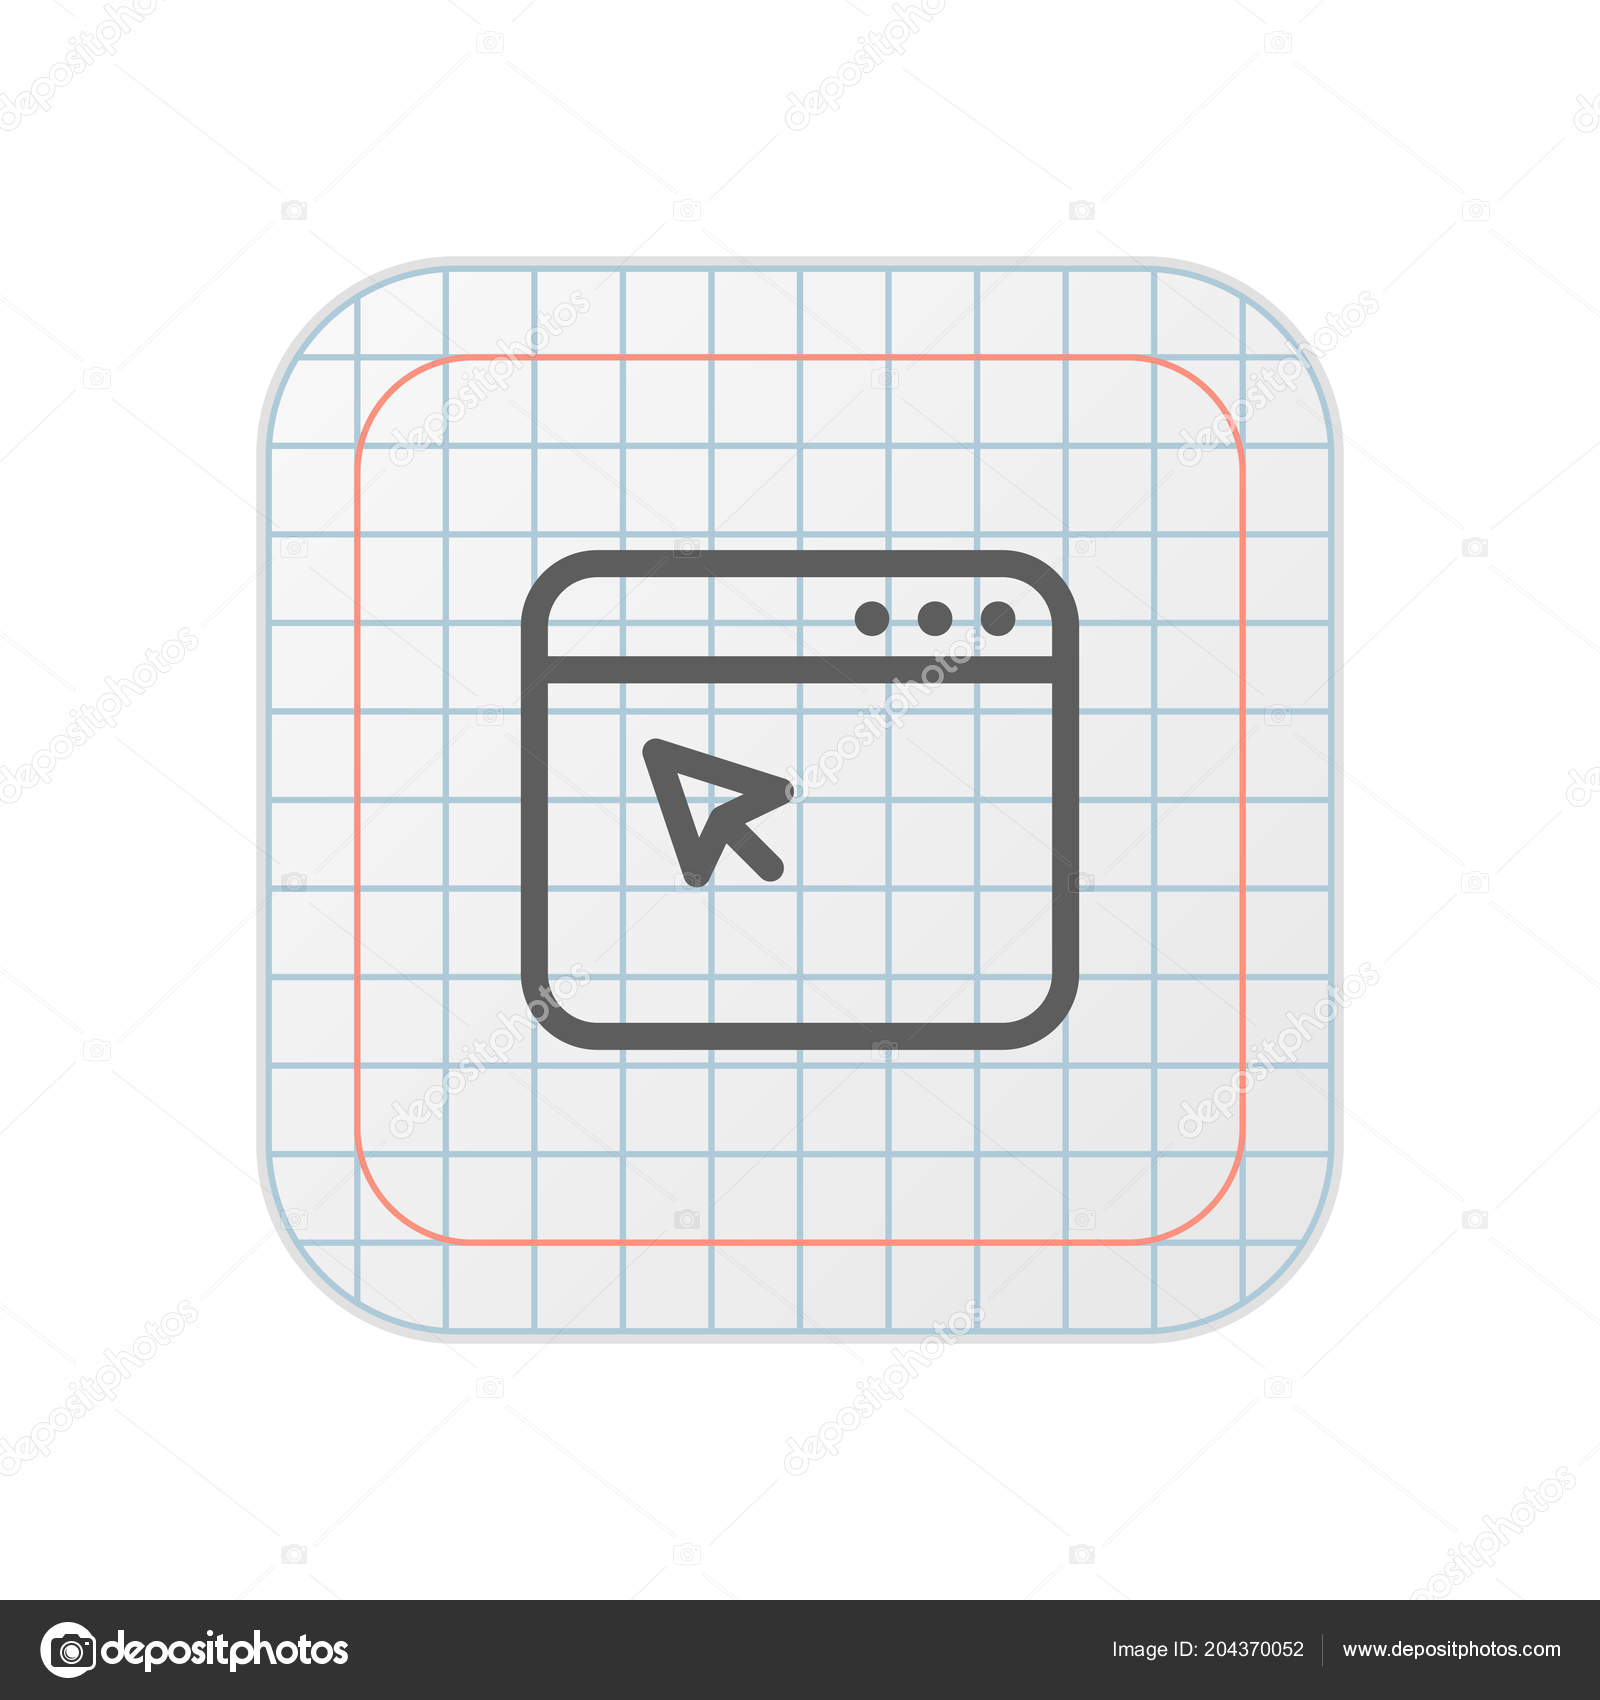 Browser Grid App Button — Stock Vector © DigiClack #204370052